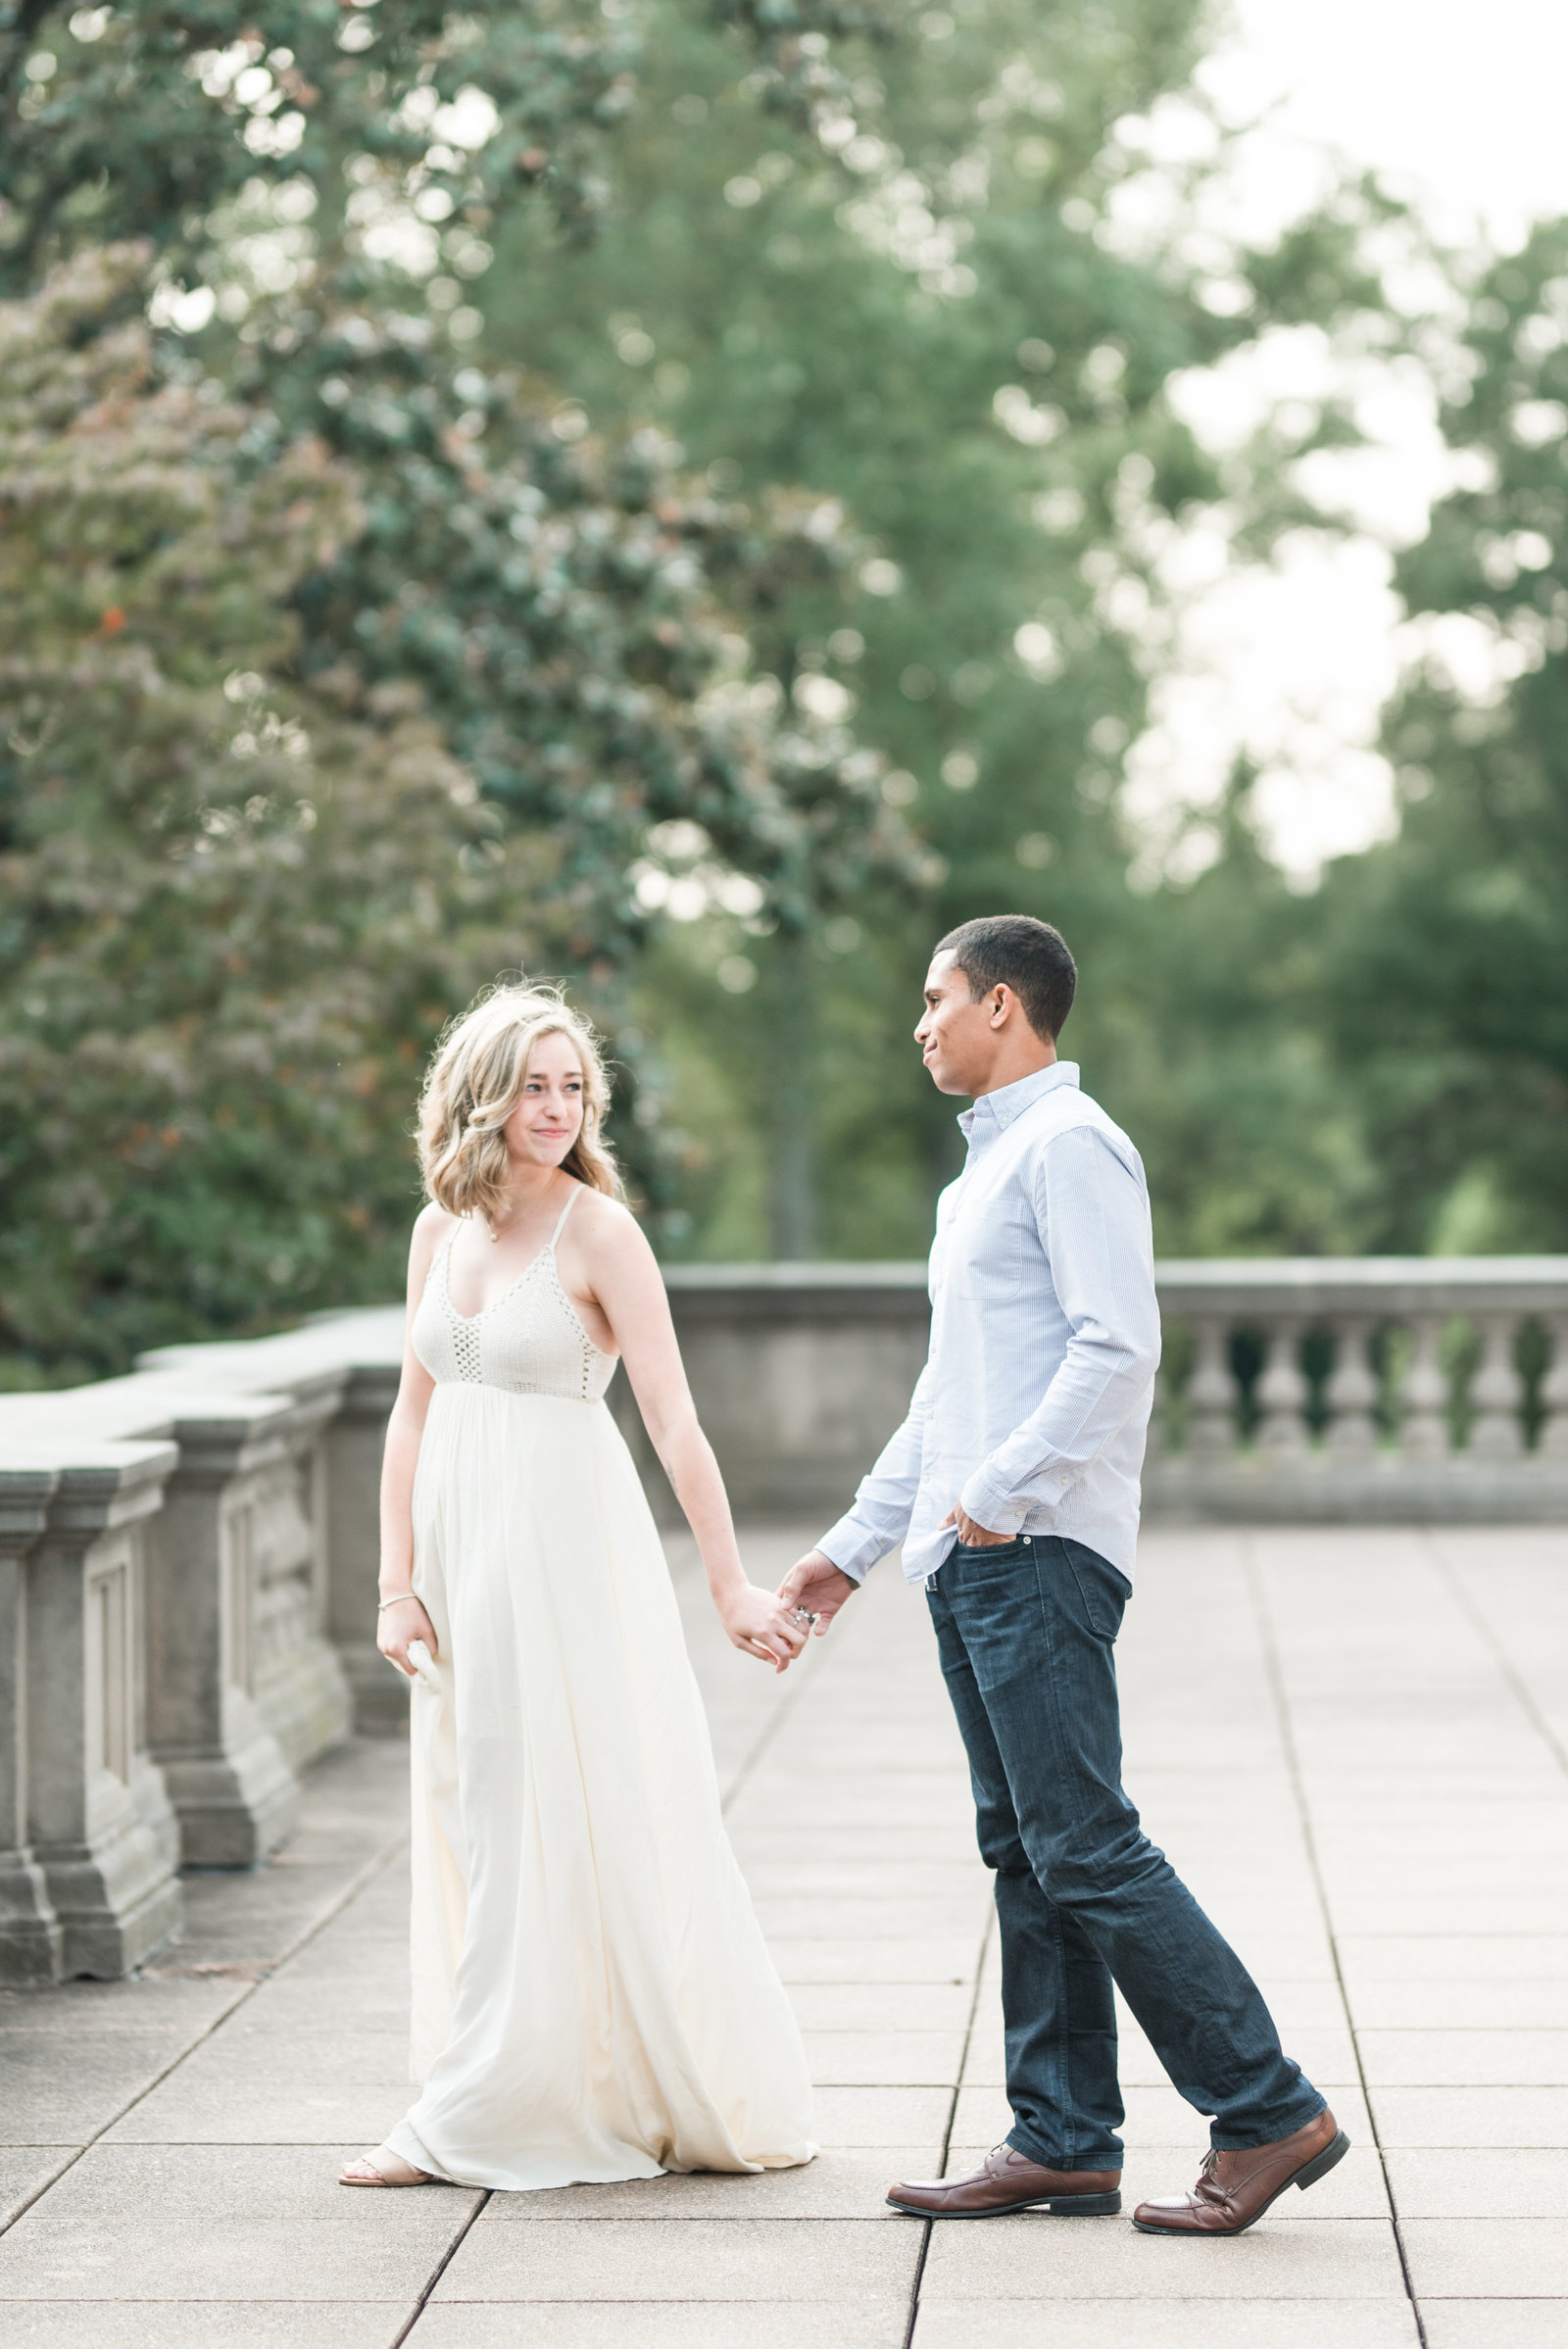 byrd-park-carillon-tower-richmond-virginia-engagement-photo236